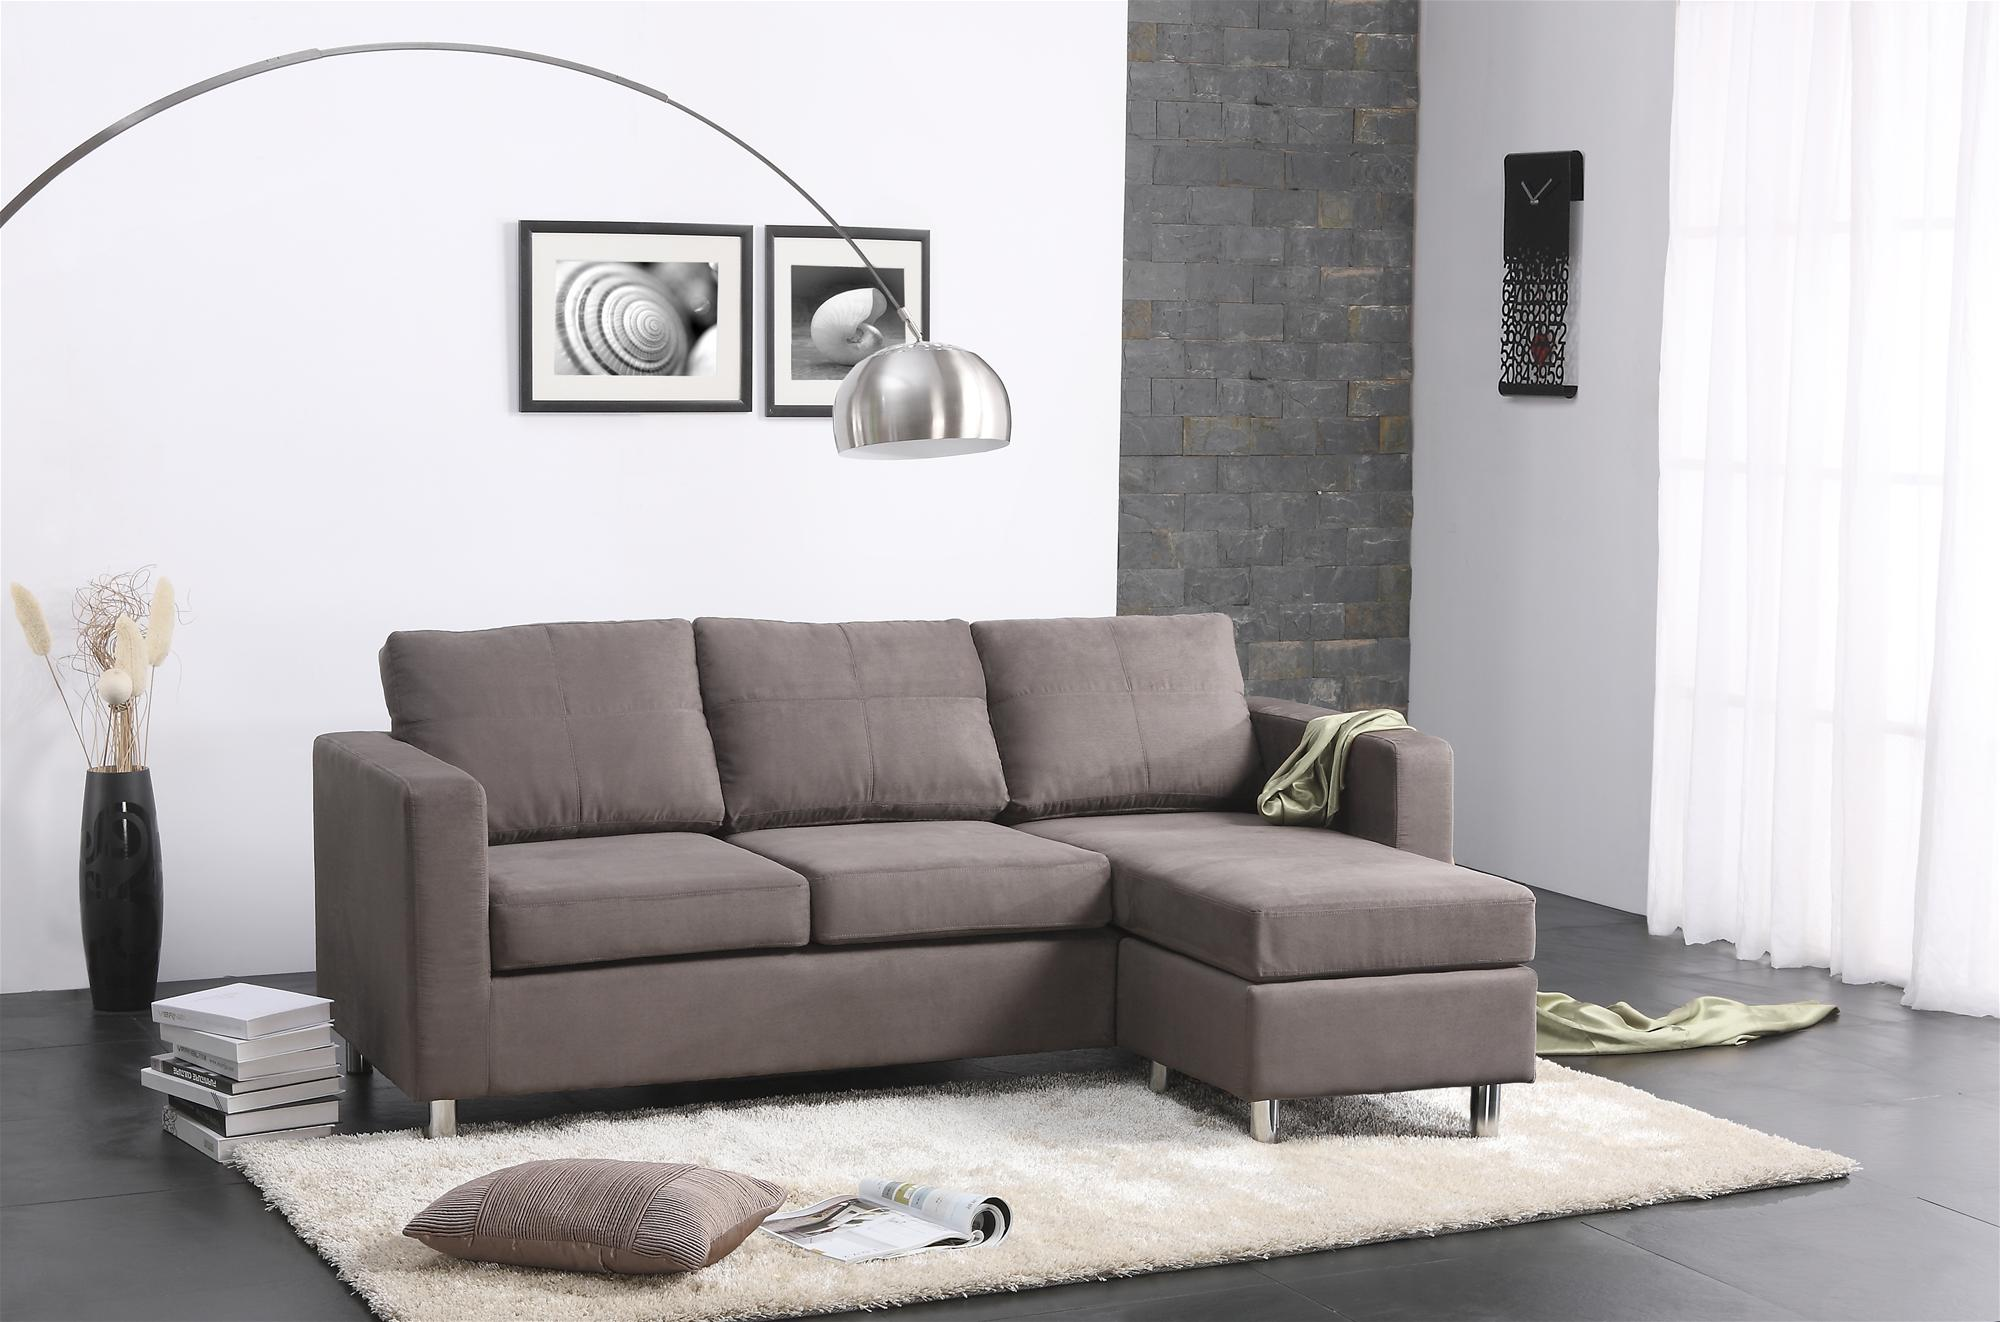 Awe Inspiring Fabulous Contemporary Gray Color Small Sectional Sofa Design Camellatalisay Diy Chair Ideas Camellatalisaycom